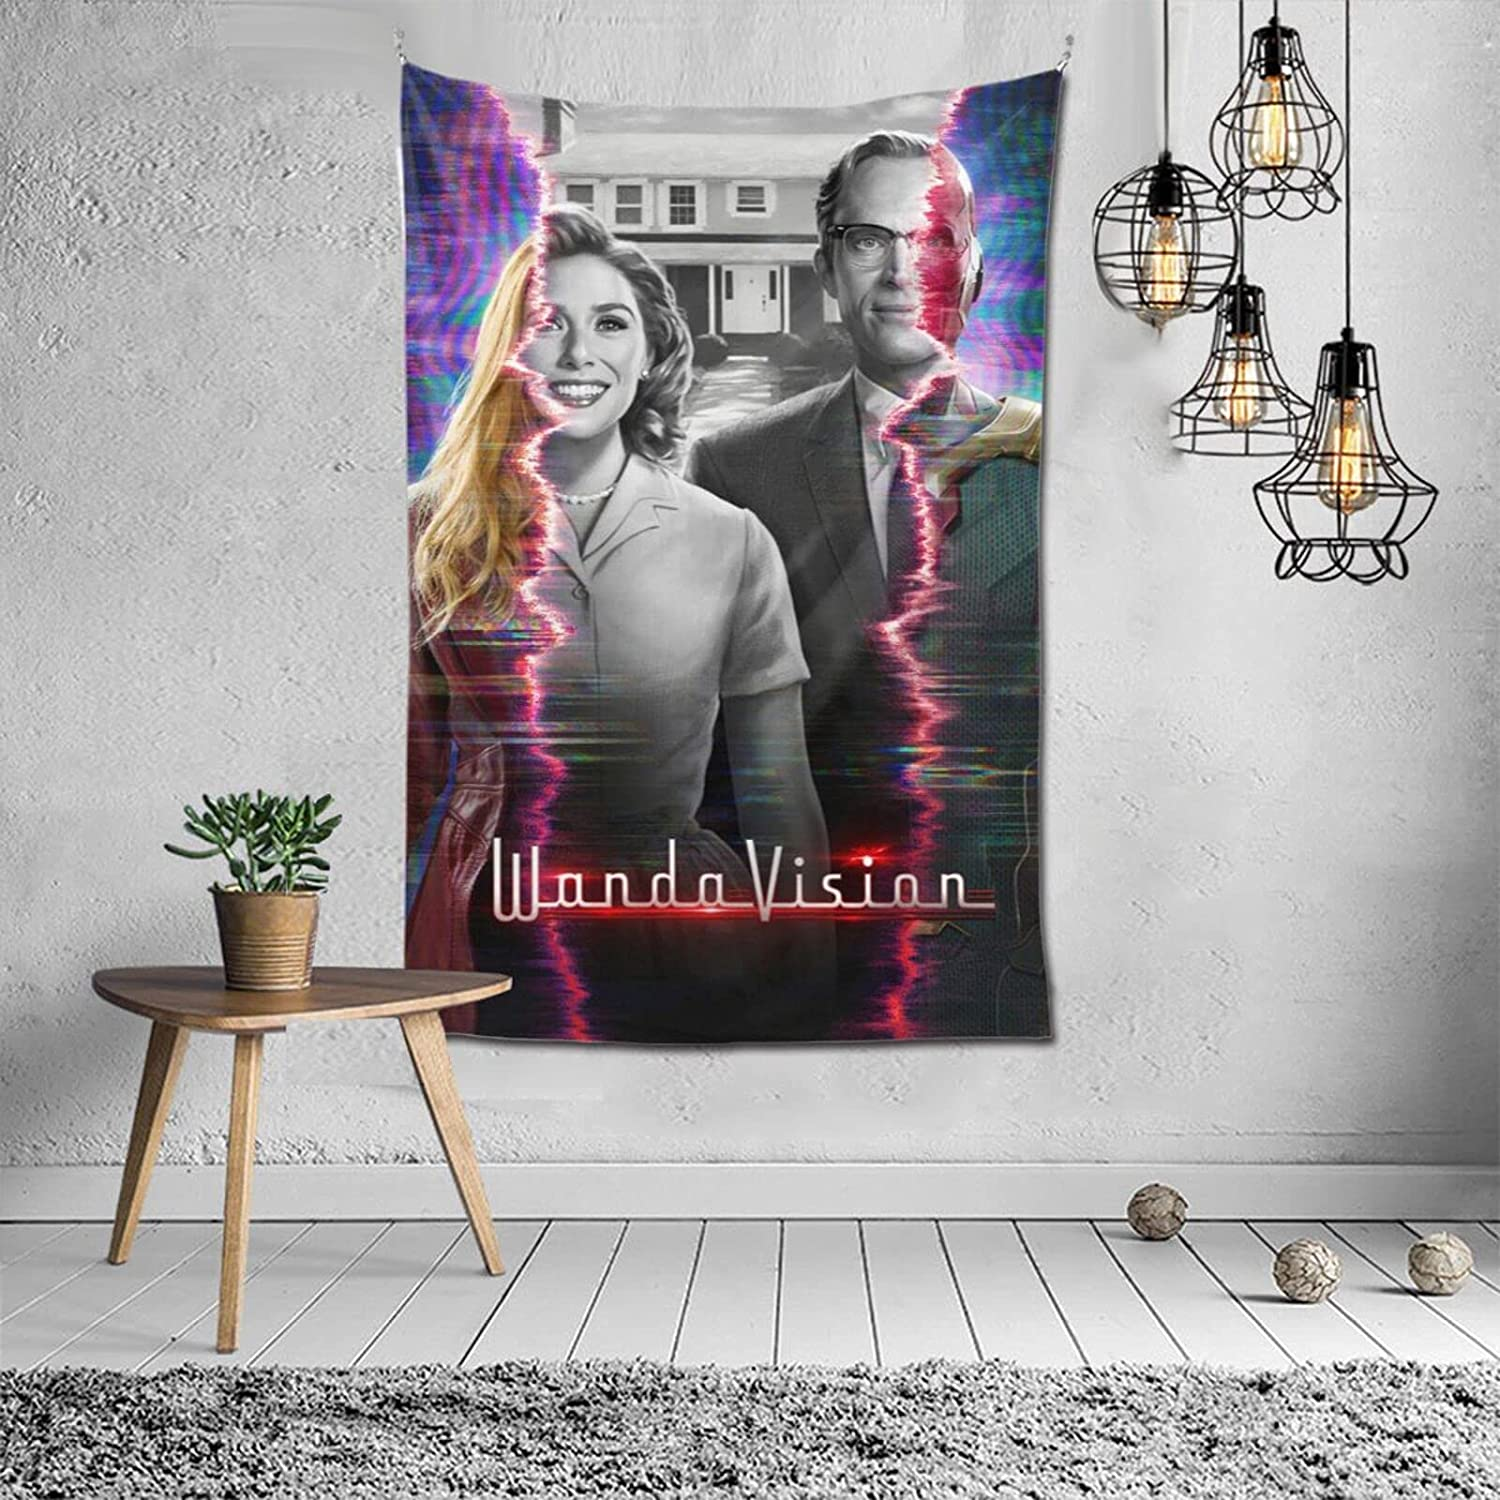 ZGQIMEI Wan-da-Visi-on Wall Tapestry Durable Wall Hanging,Room Decor Movies Modern Style Cozy Decor Tabletop Buffet Sofa Cover for Living Room 40